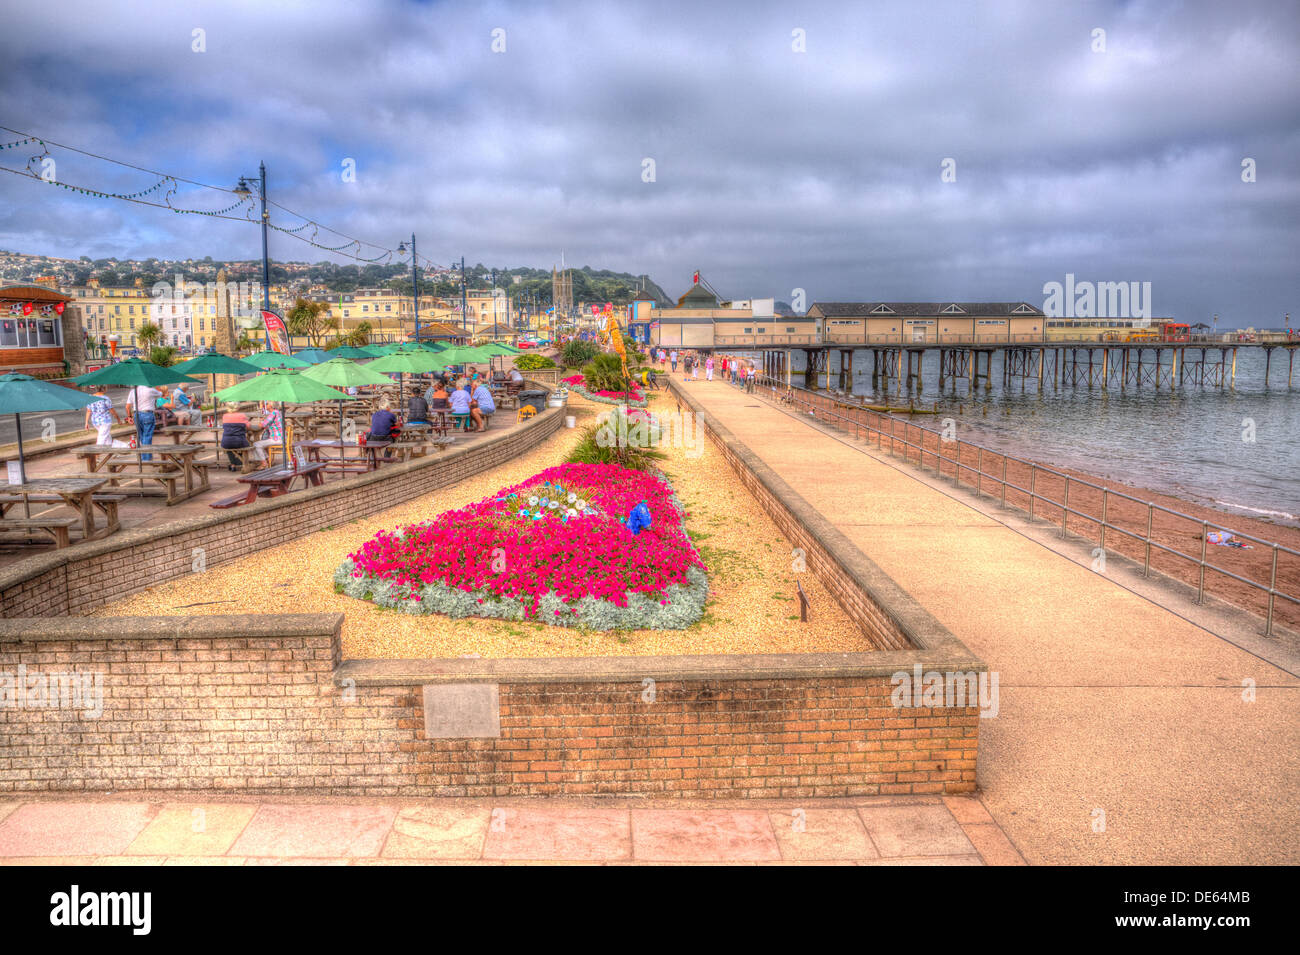 Teignmouth seafront promenade and pier Devon England, traditional English structure by the sea in HDR with red flowers Stock Photo